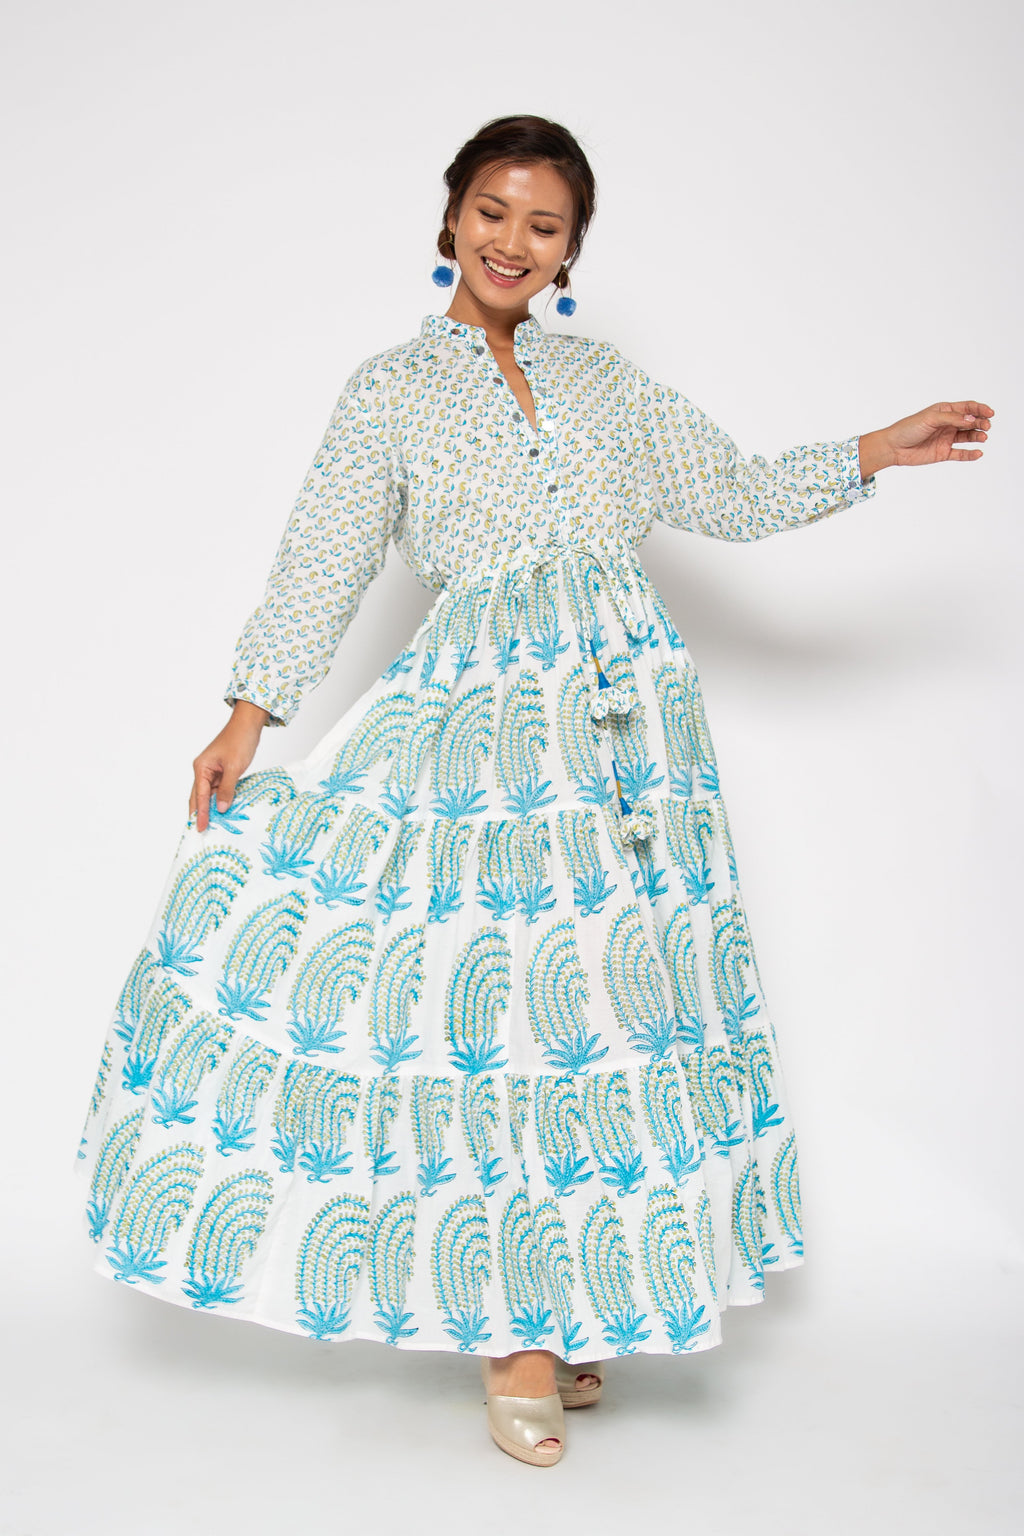 Baliza women´s Island maxi dress with pockets in blue paisley block print